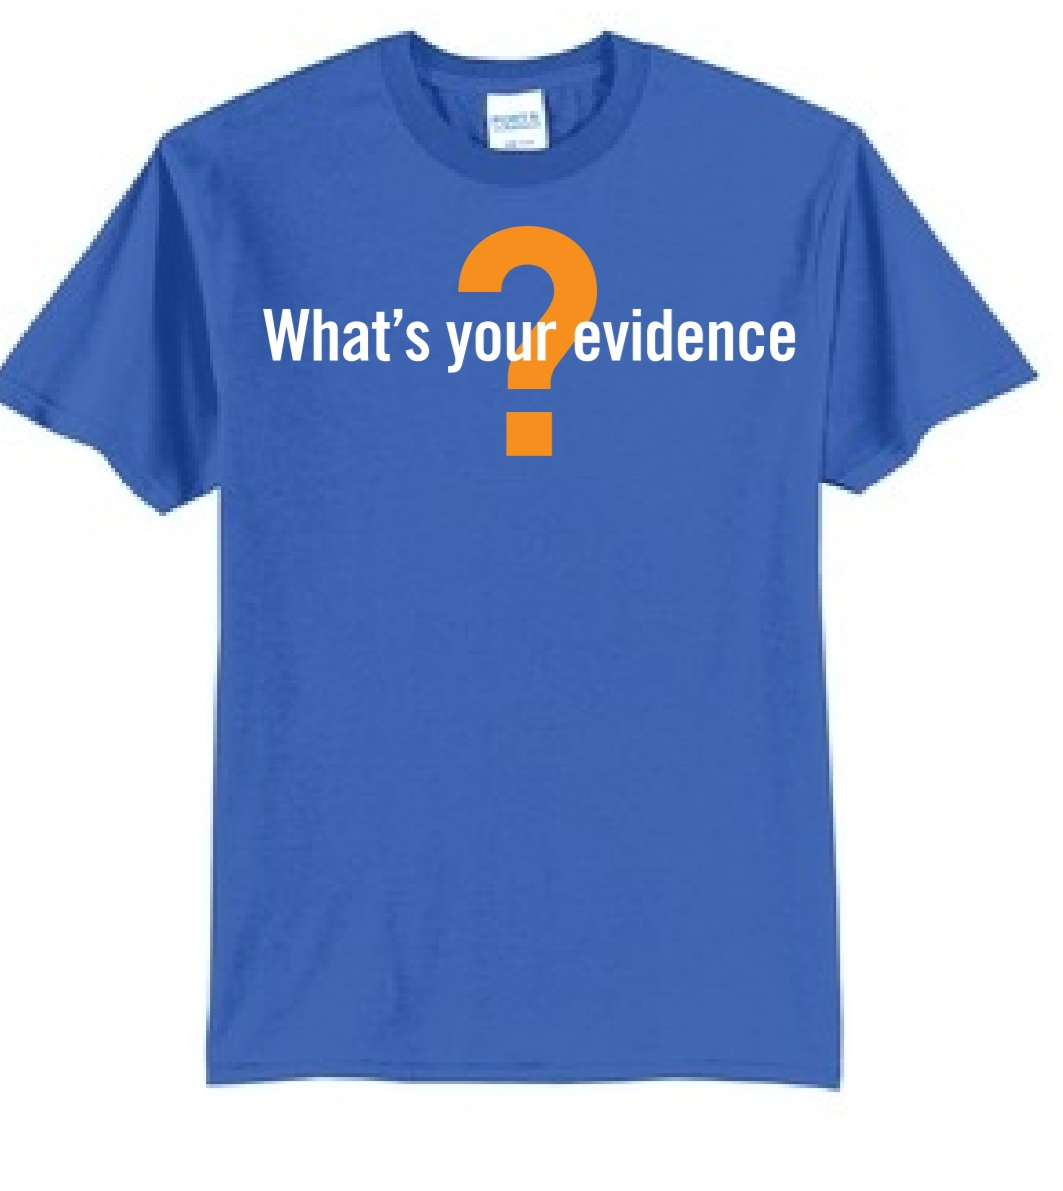 Where's Your Evidence? - T-Shirt